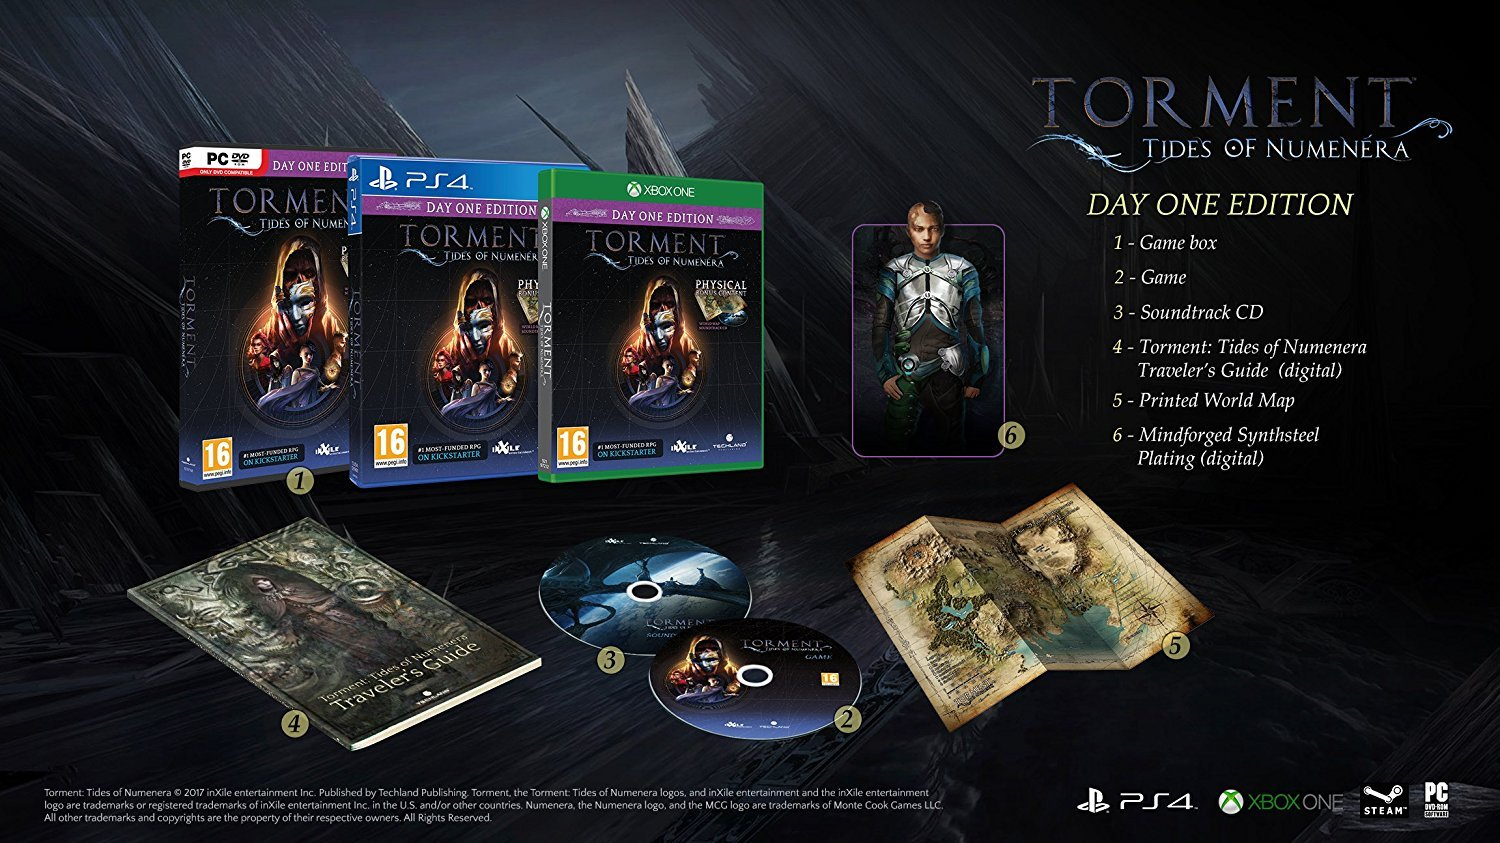 Torment: Tides of Numenera Day One Edition for Xbox One image